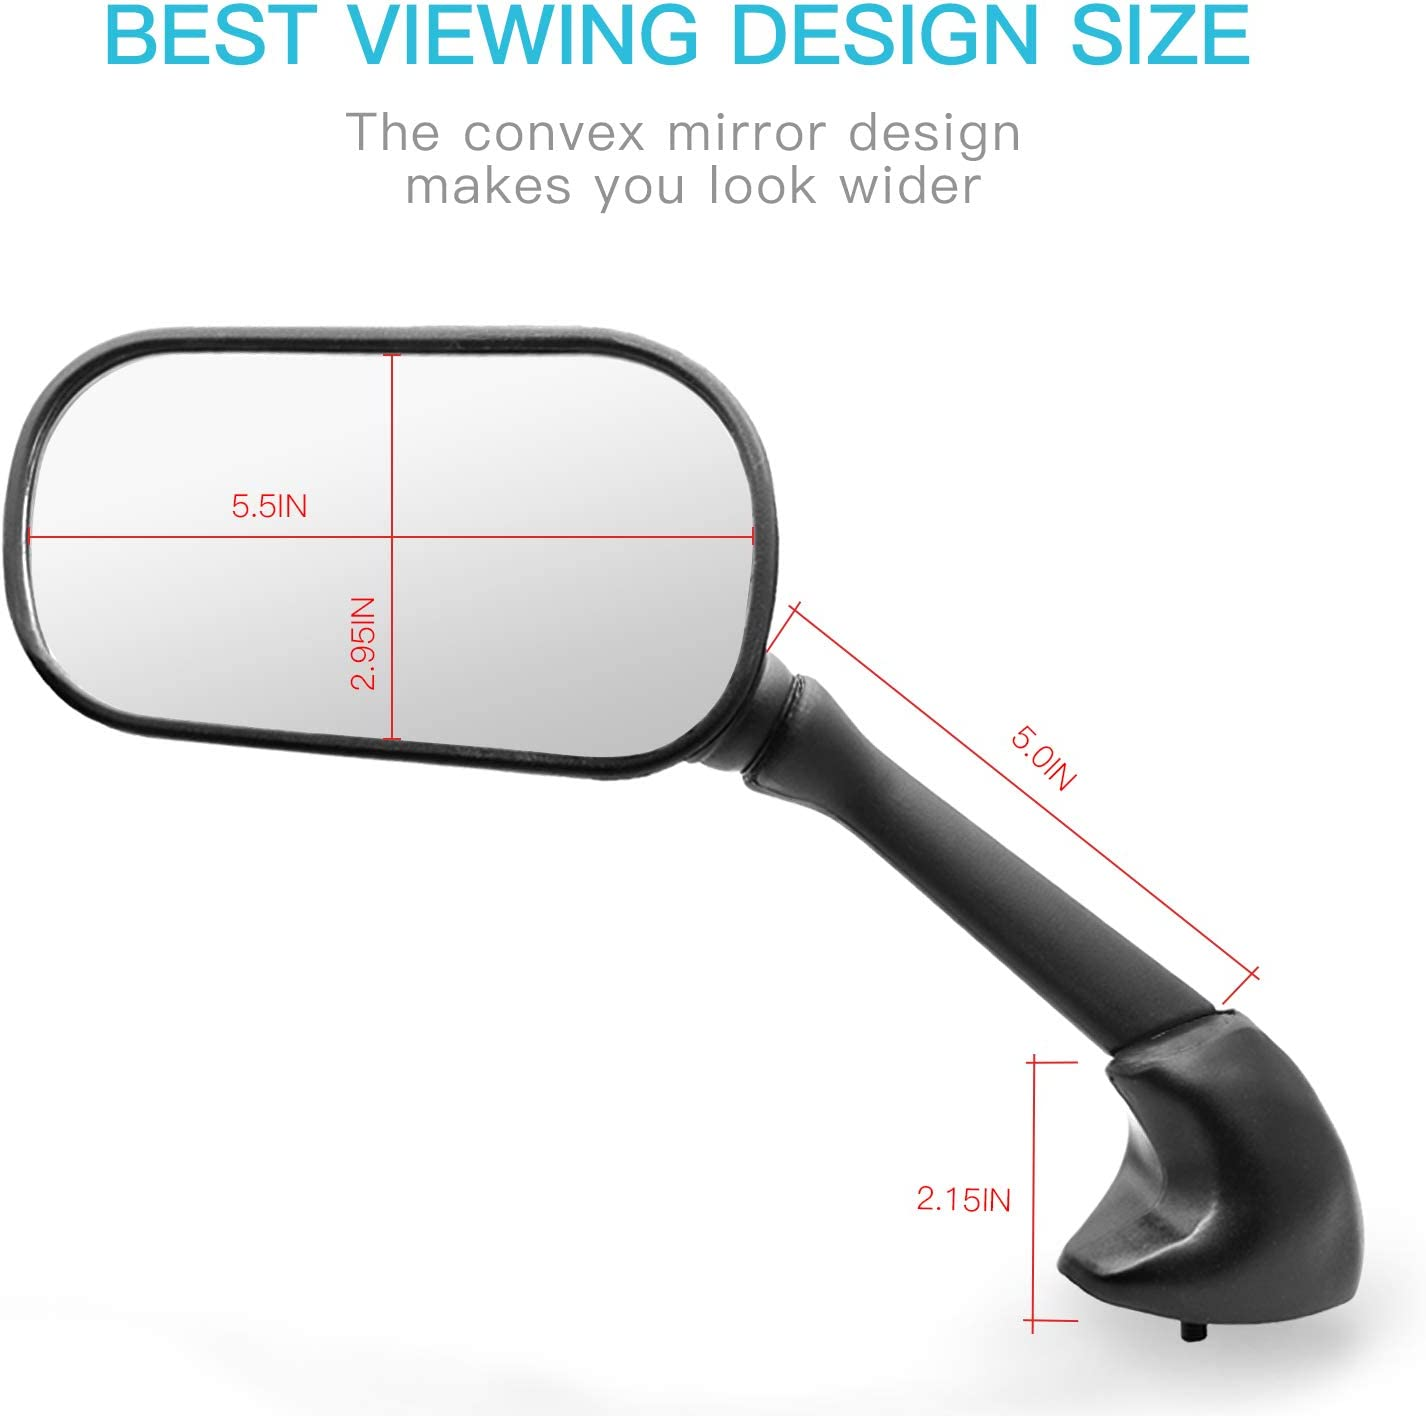 YZF R6 1998-2007 MZS Motorcycle Rear View Mirrors for Yamaha YZF R1 1998-2008